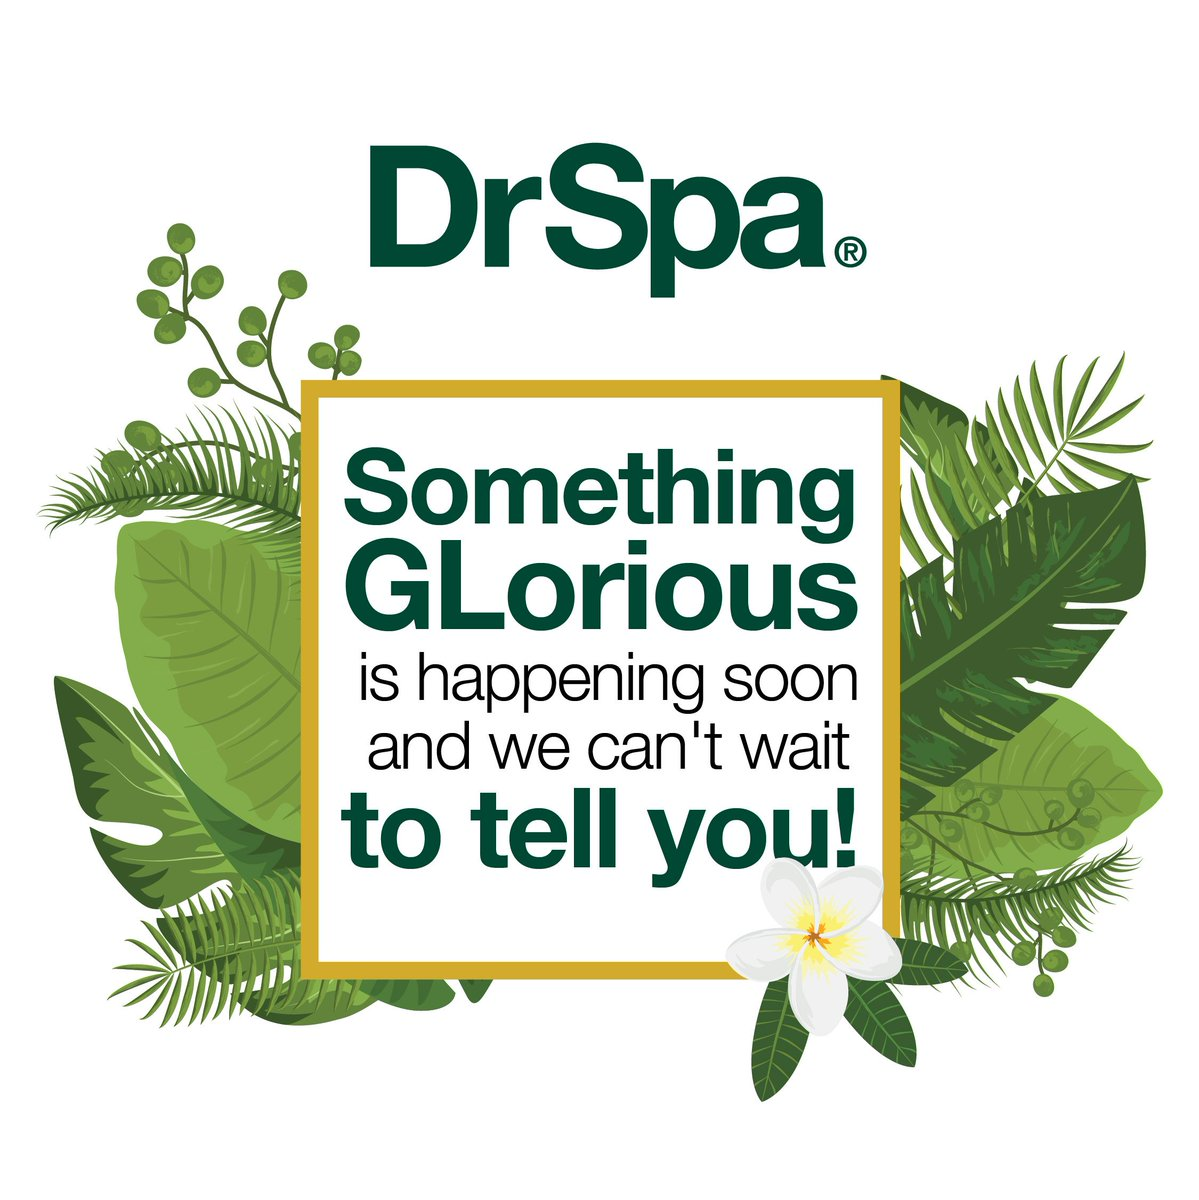 We have exciting news coming soon and we can't wait to share it with all of you!  #DrSpa #excitingannouncement https://t.co/Aa2wuemswe